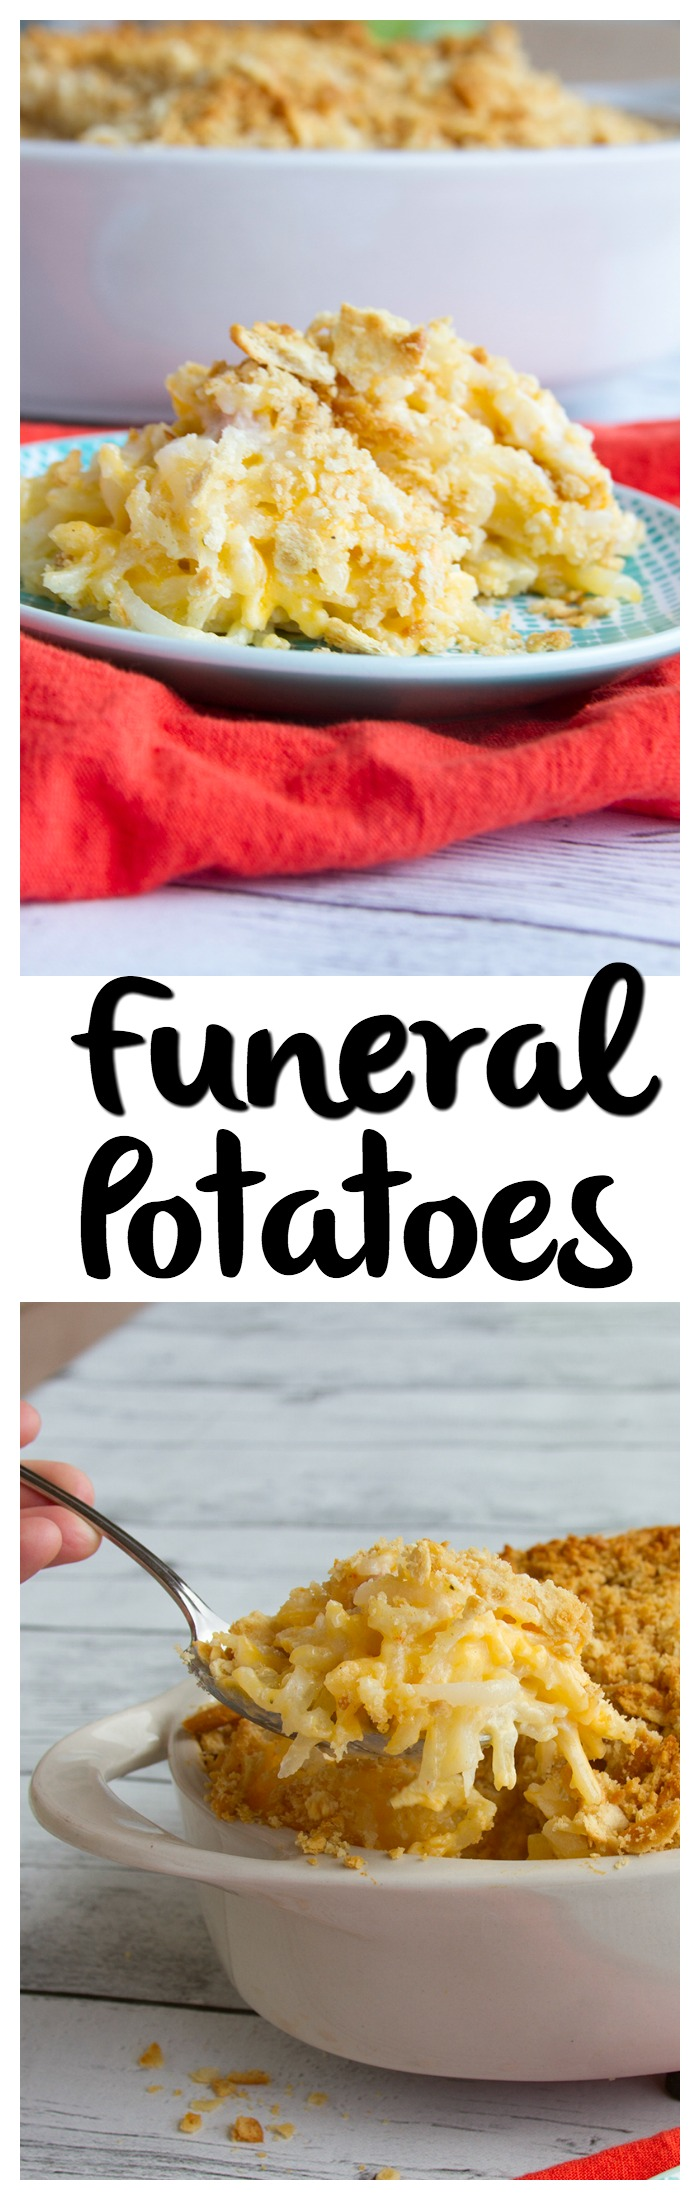 Funeral Potatoes | These are the ultimate summer potluck food! So yummy!!